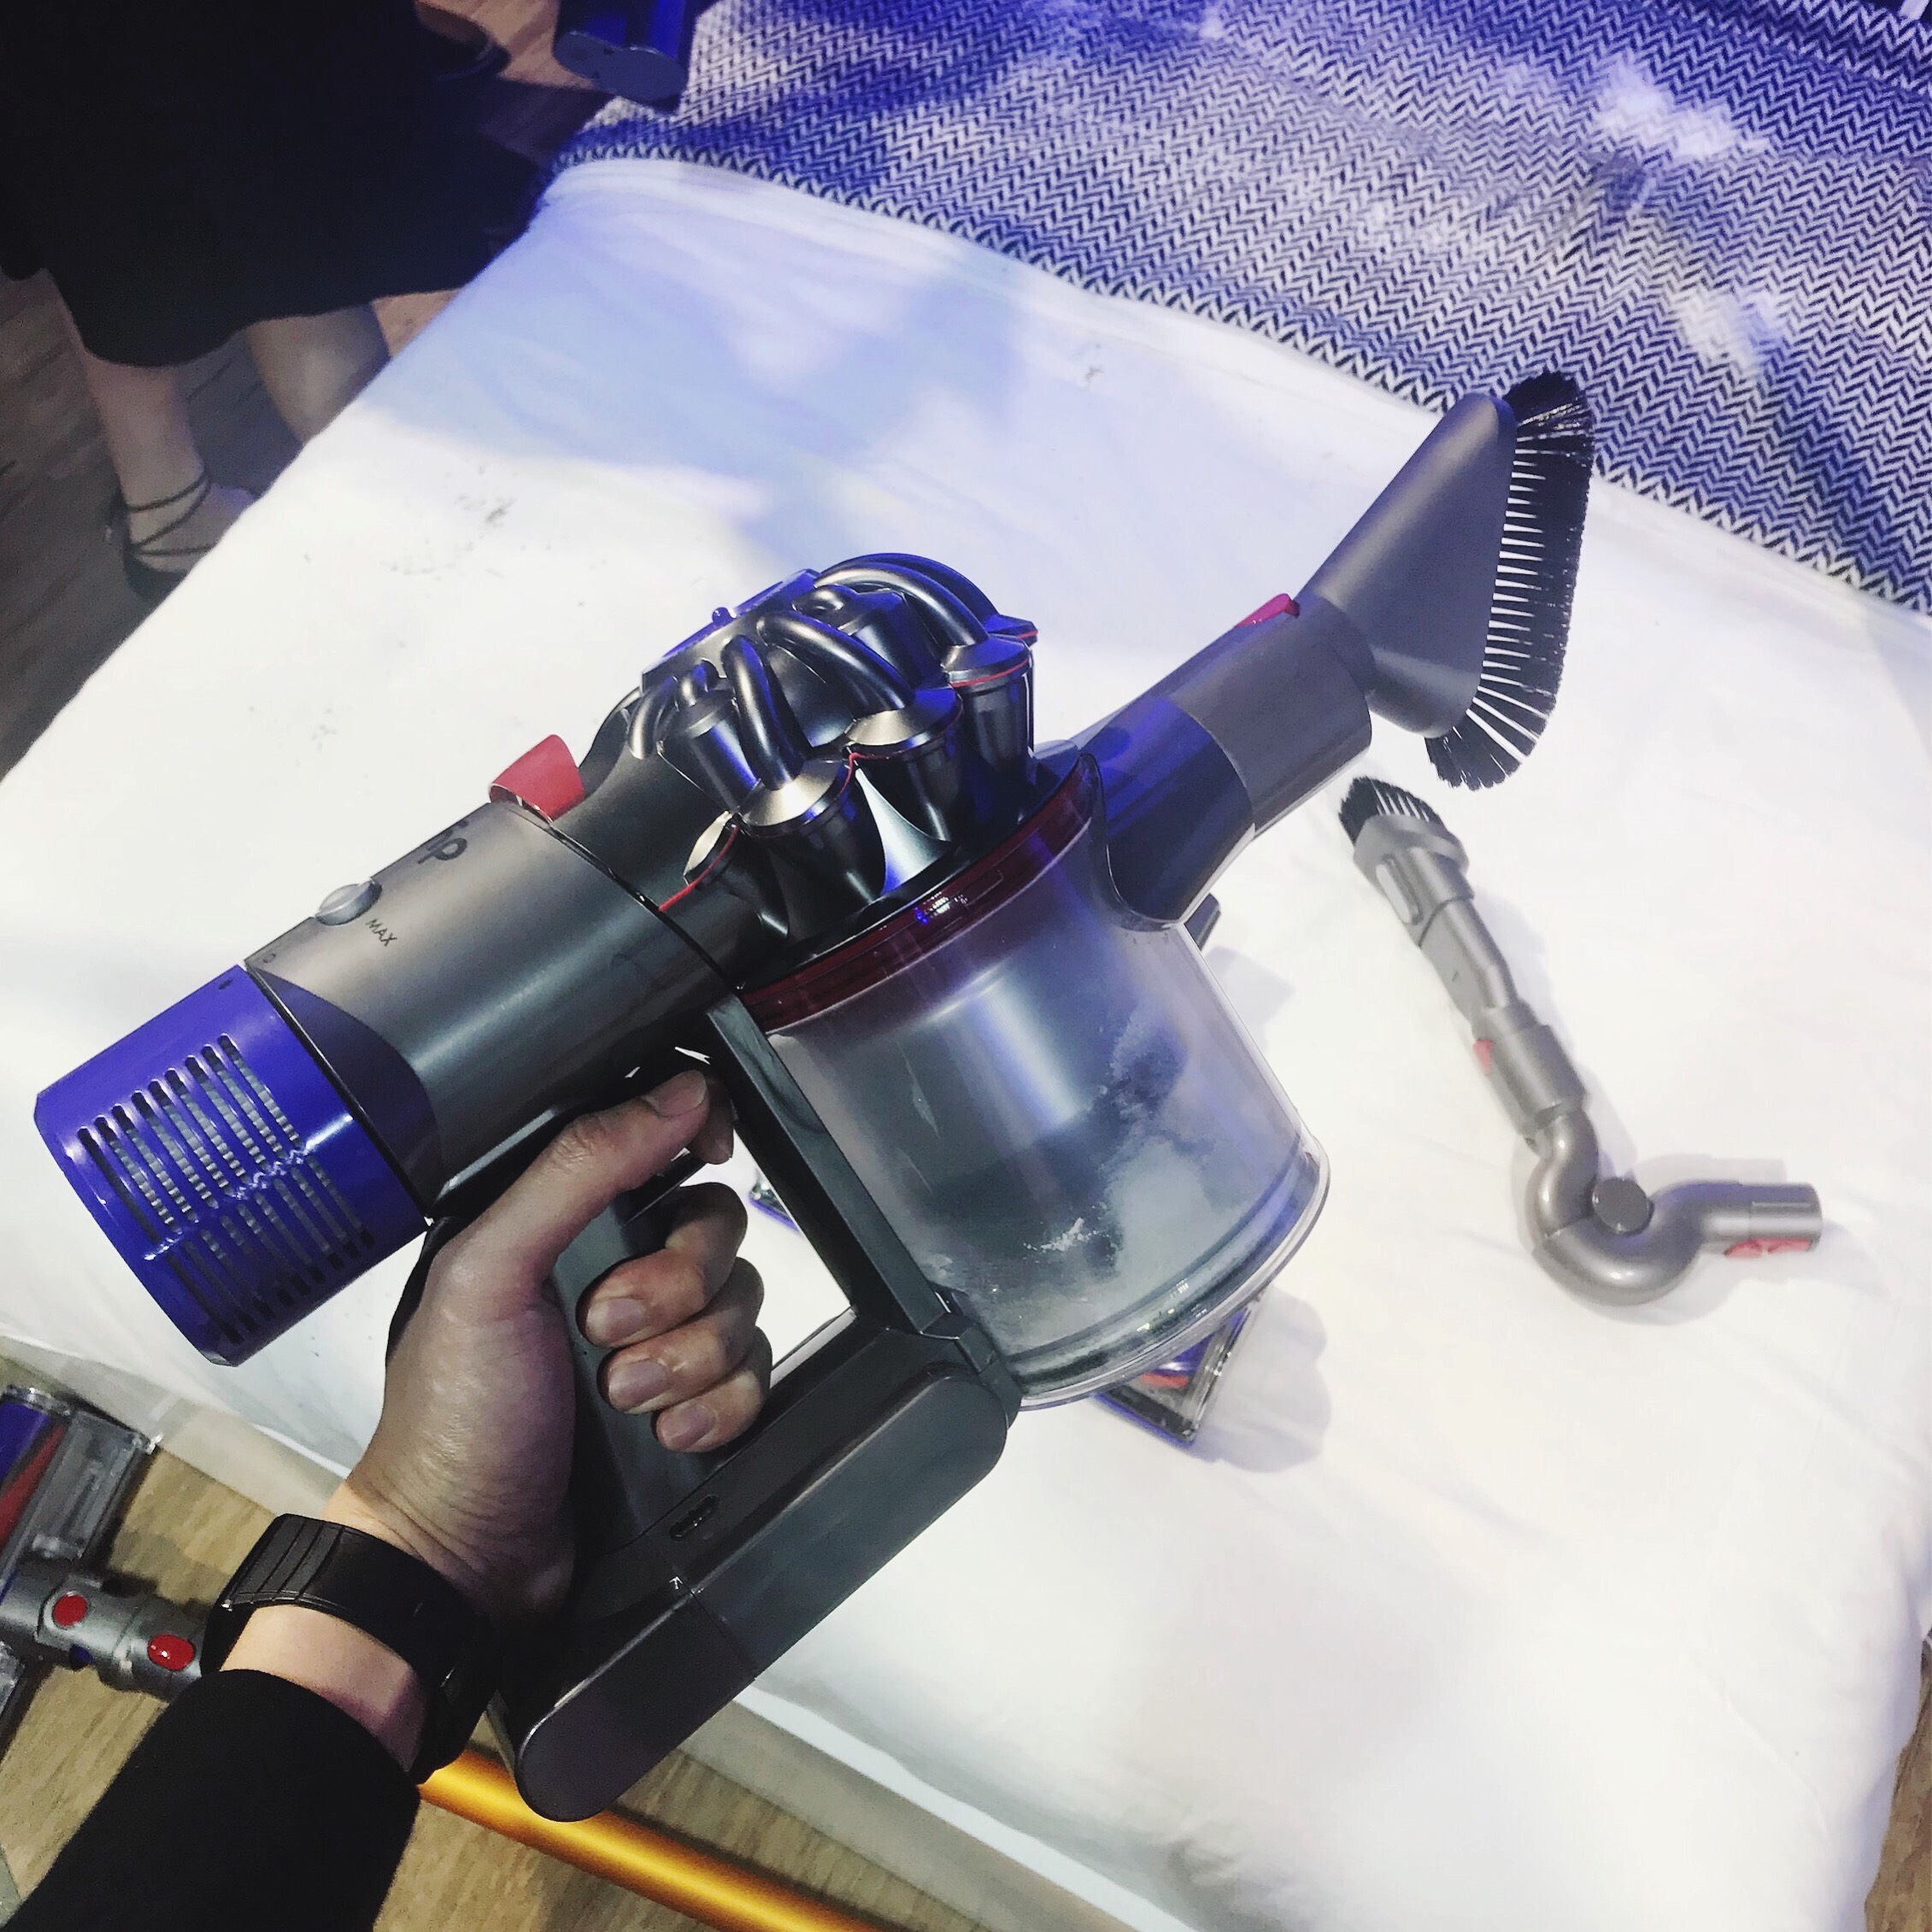 See The New Dyson Vacuum Cleaner We Flew To Bangkok For